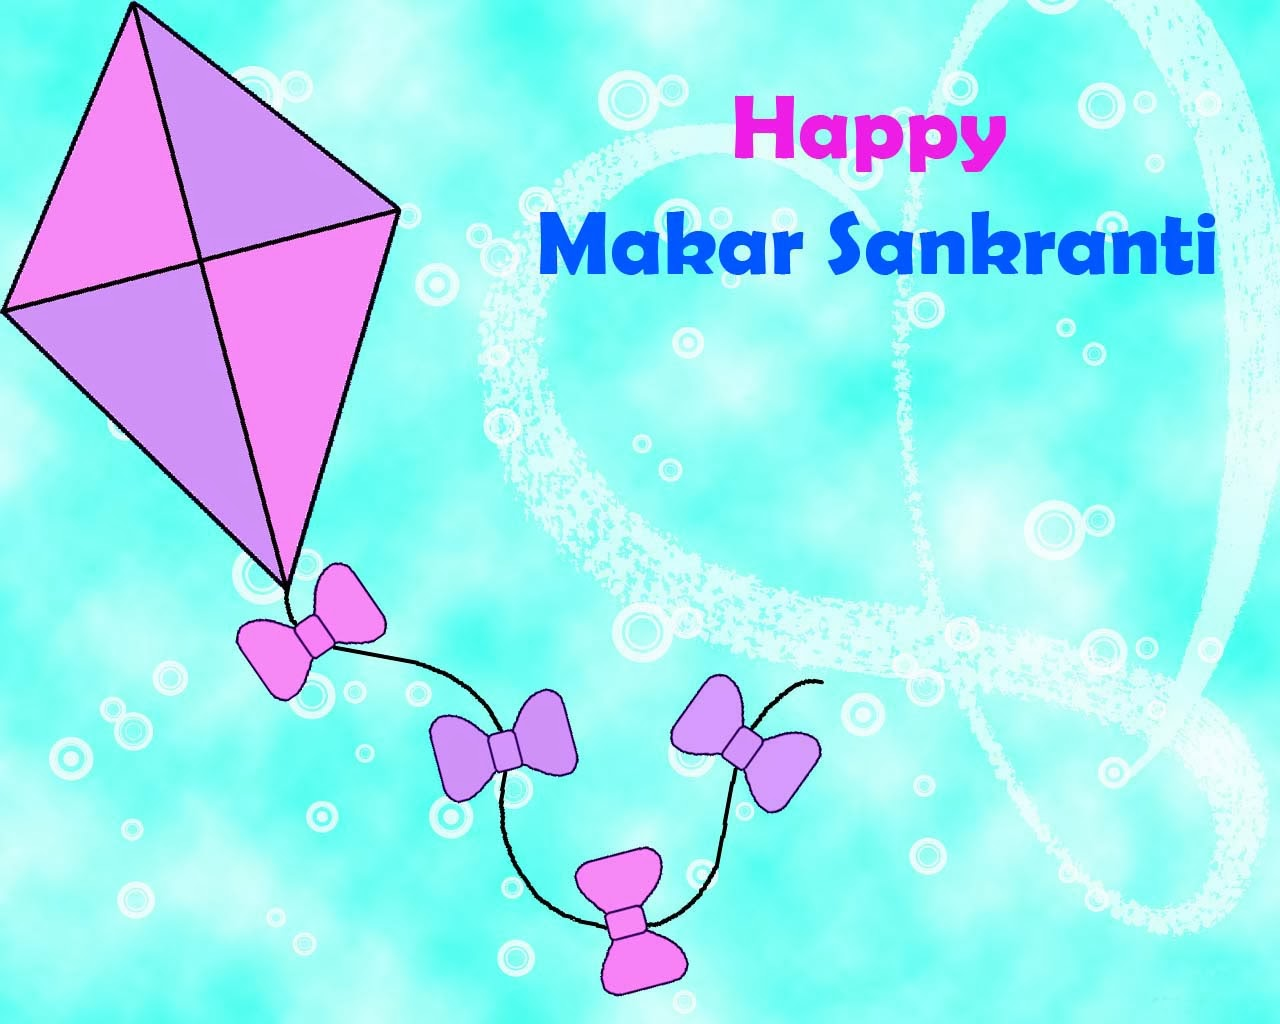 makar sankranti quote hd wallpapers groups